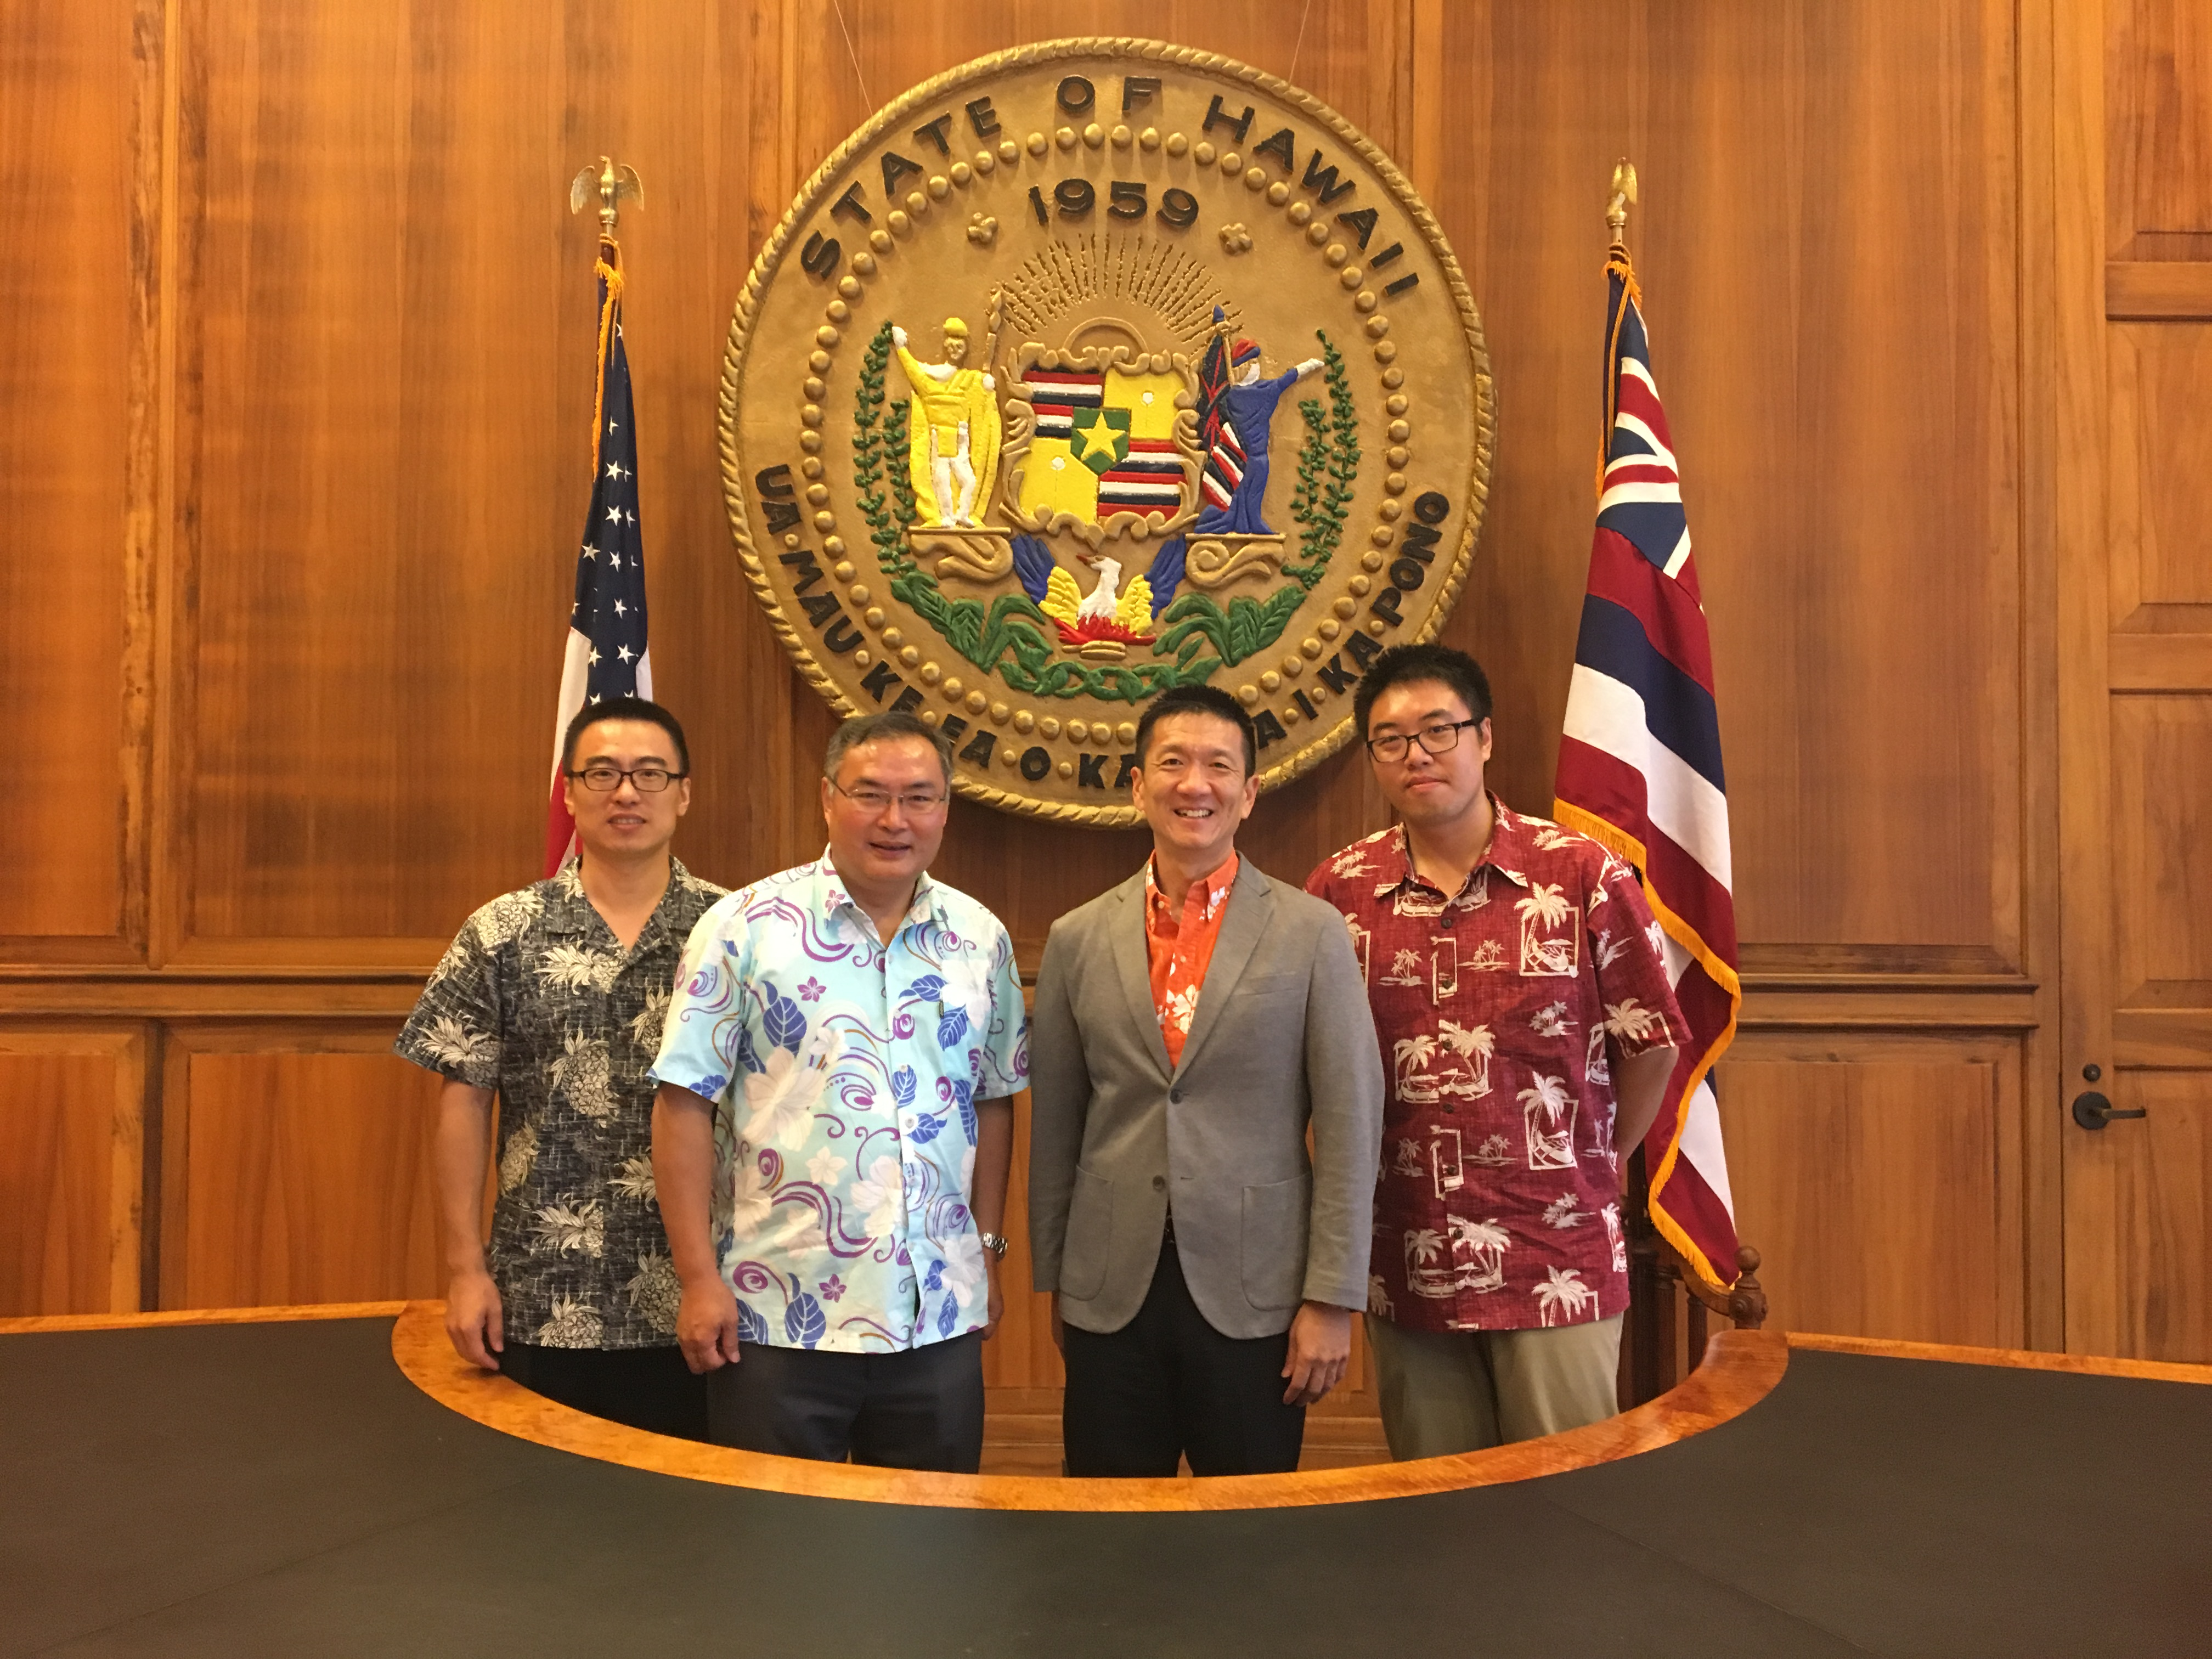 Lt. Gov. Chin in front of state seal with Consul General Zhang and staff